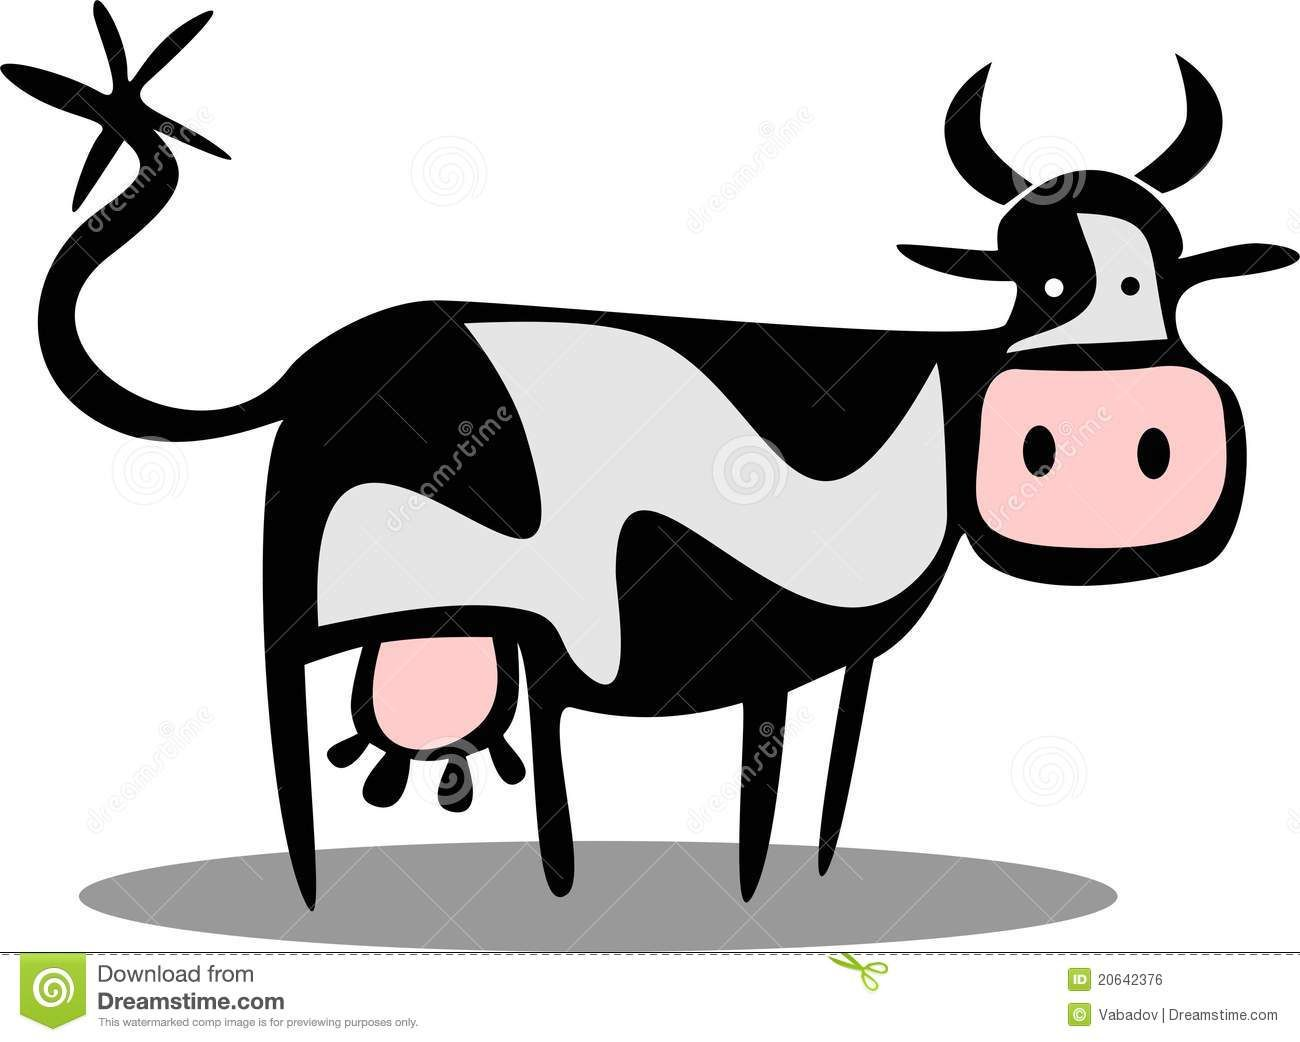 funny cartoon cow download from over 59 million high quality